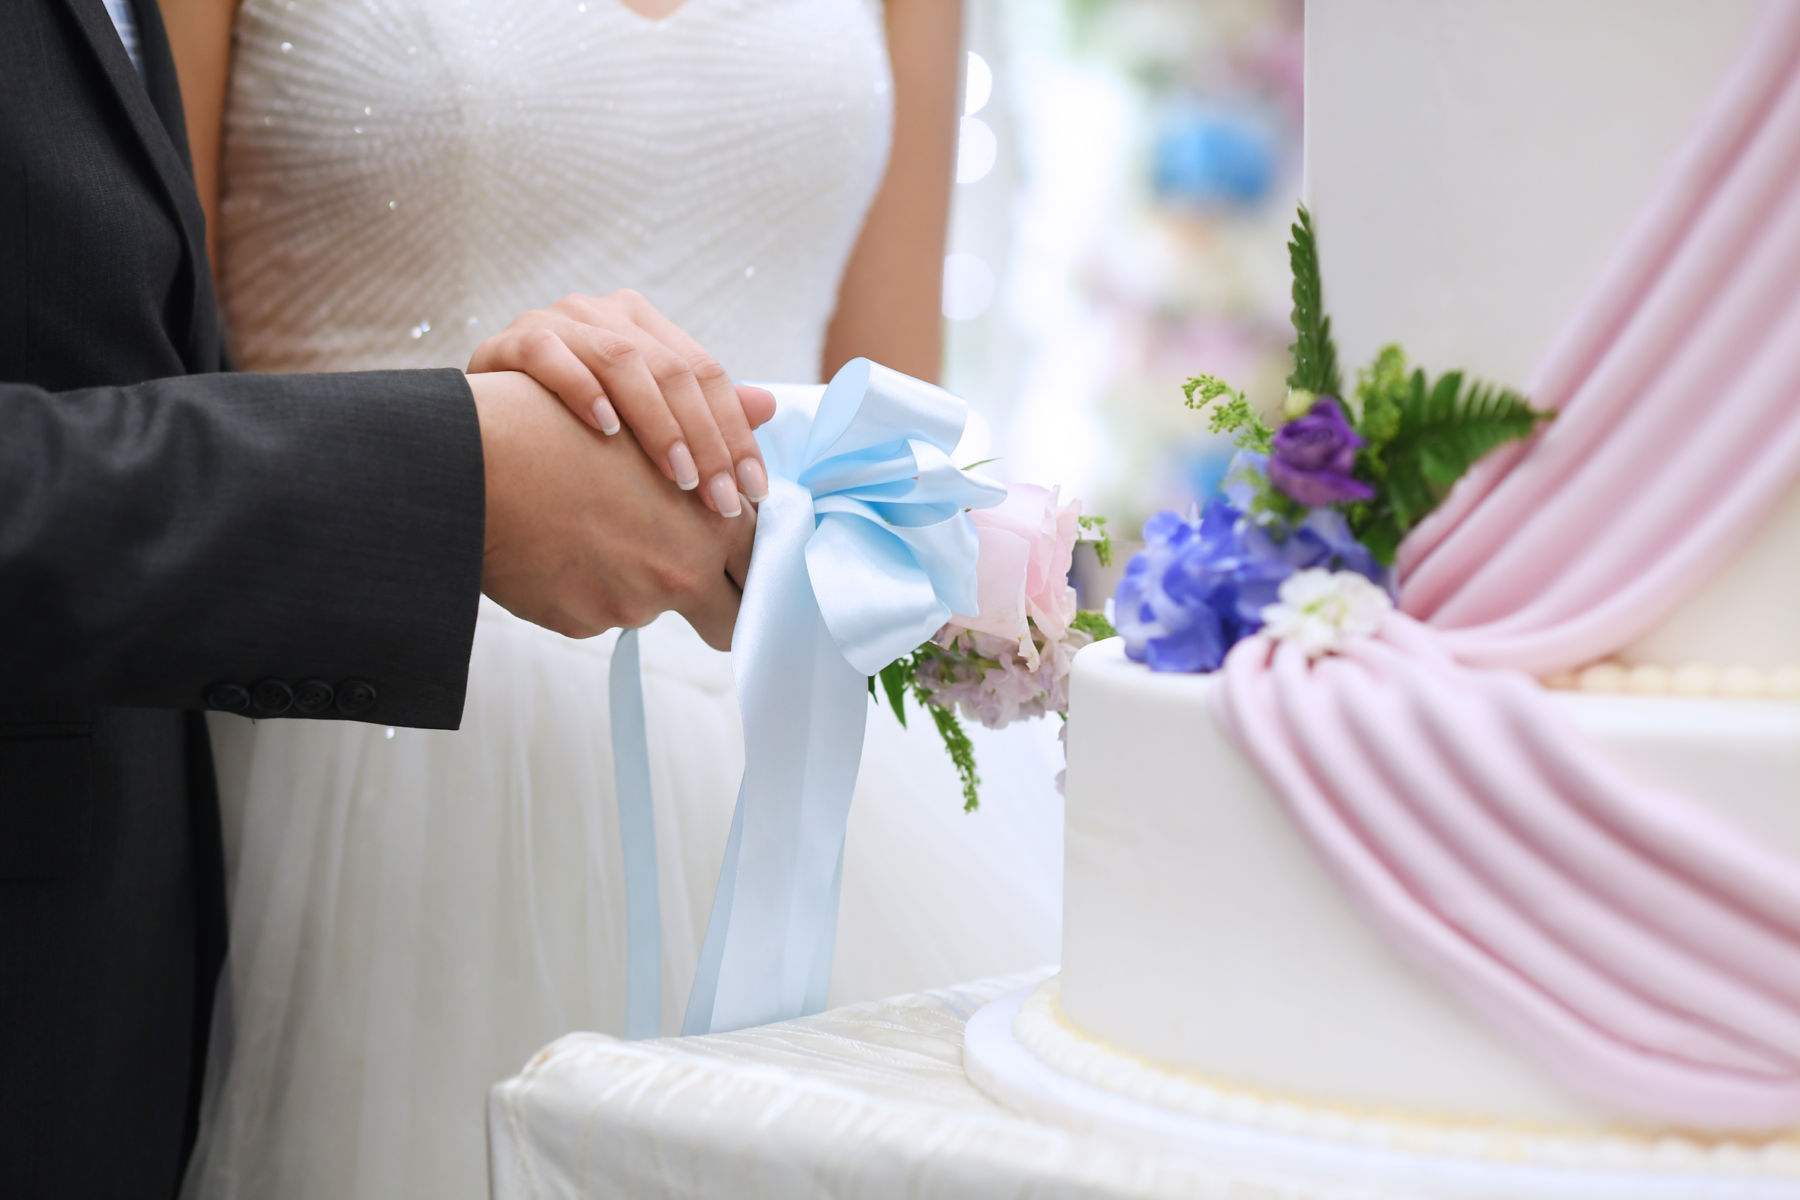 The questions on life insurance to ask before the wedding